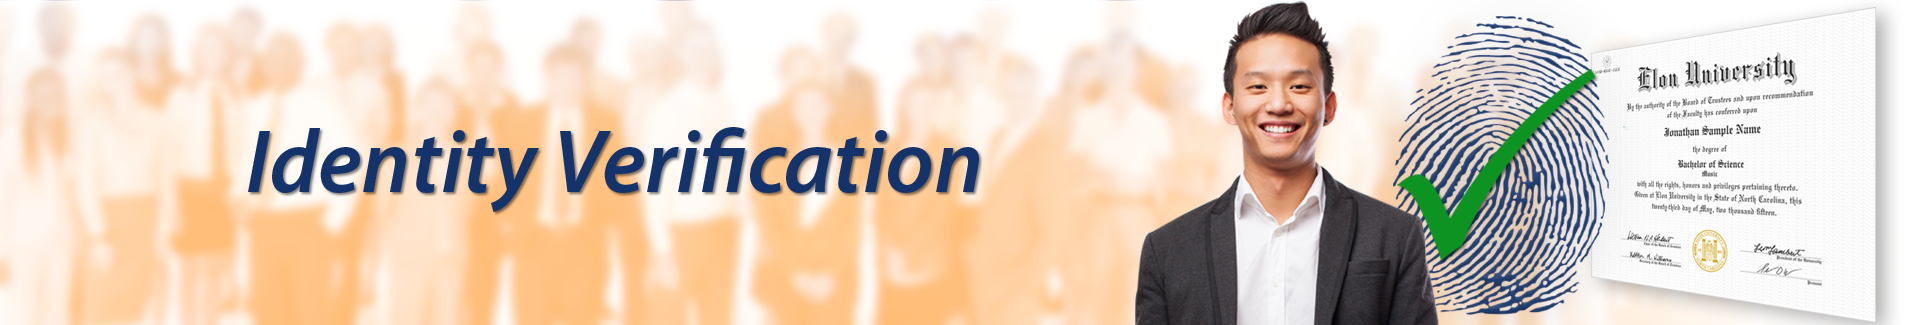 Solutions - Identity Verification logo banner